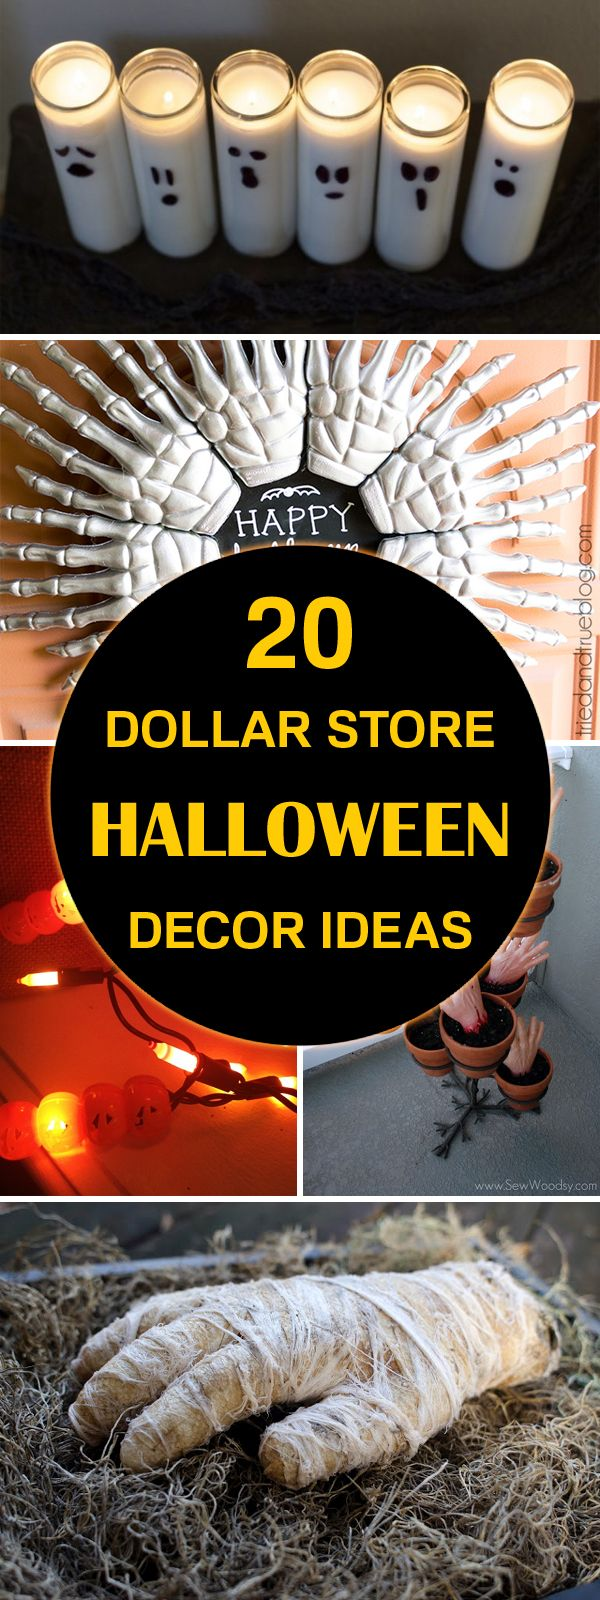 Best 25+ Halloween wedding decorations ideas on Pinterest | Gothic ...